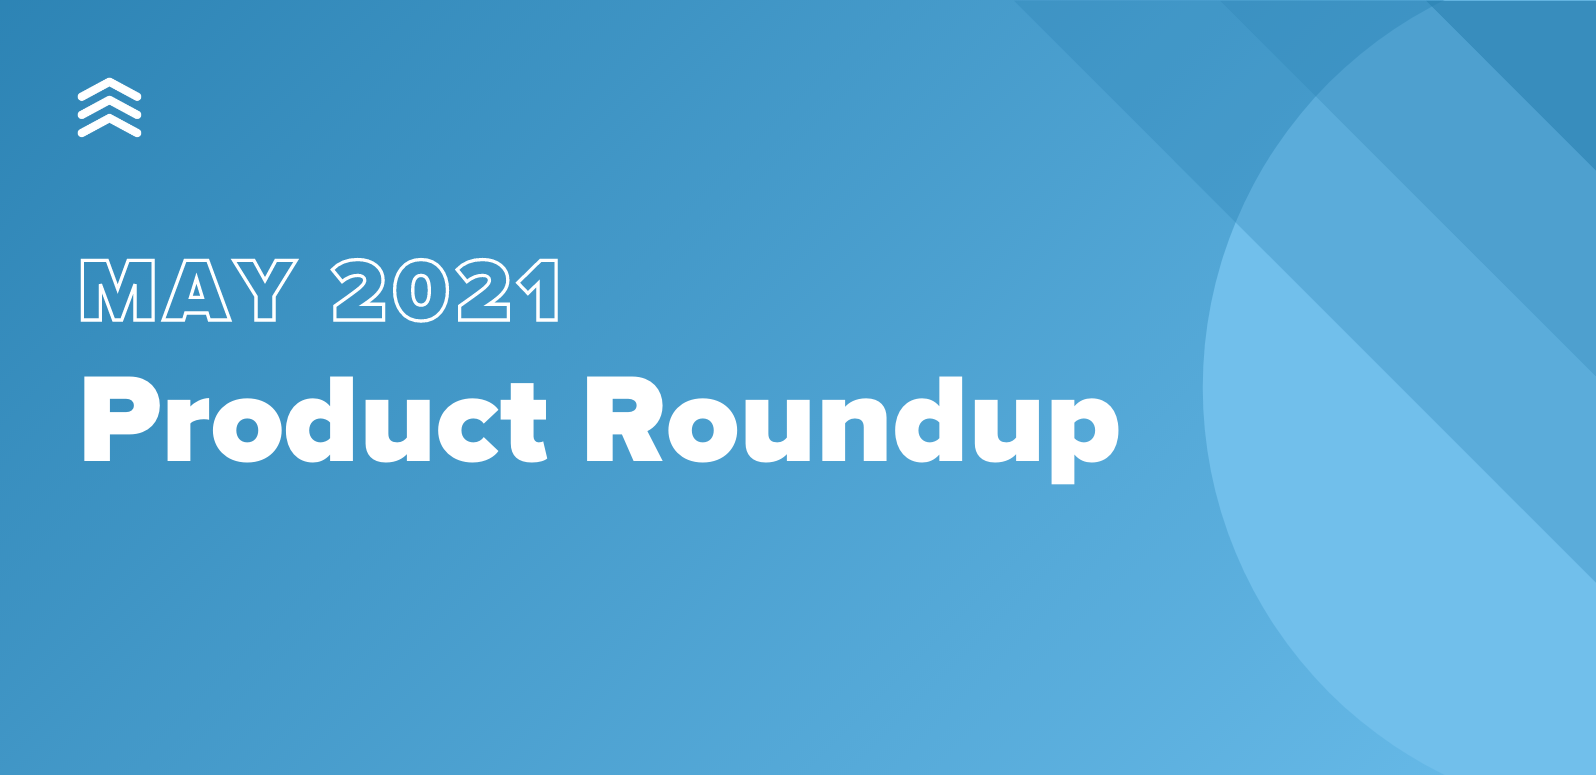 May 2021 Product Roundup